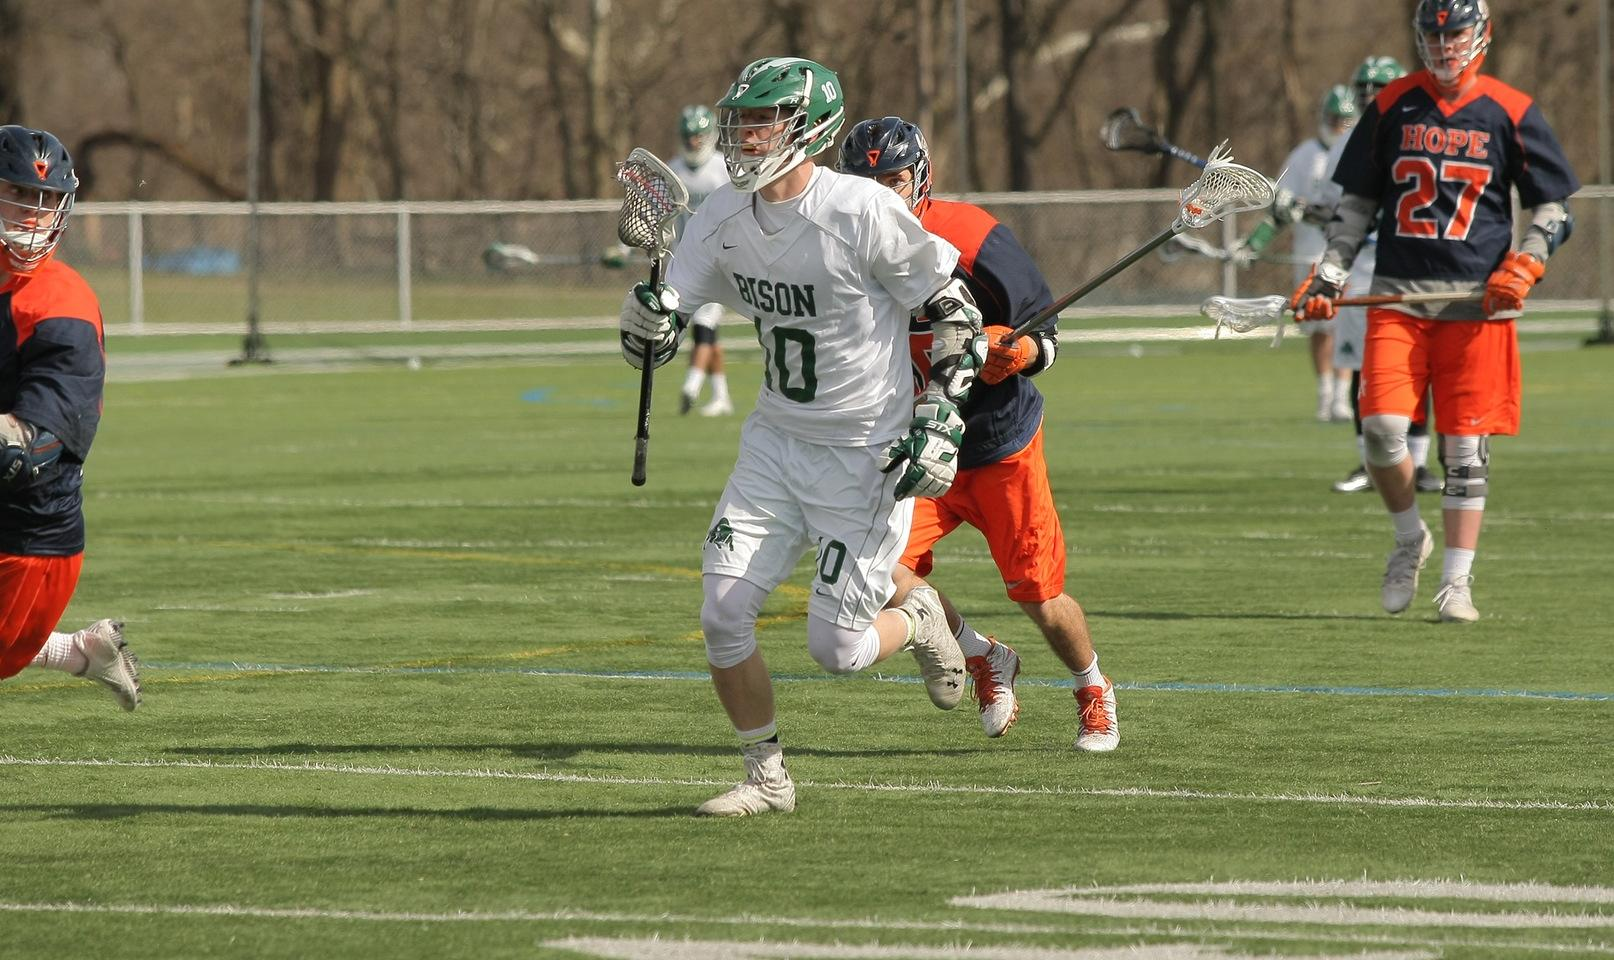 Men's lacrosse slotted seventh in ORLC Preseason Poll